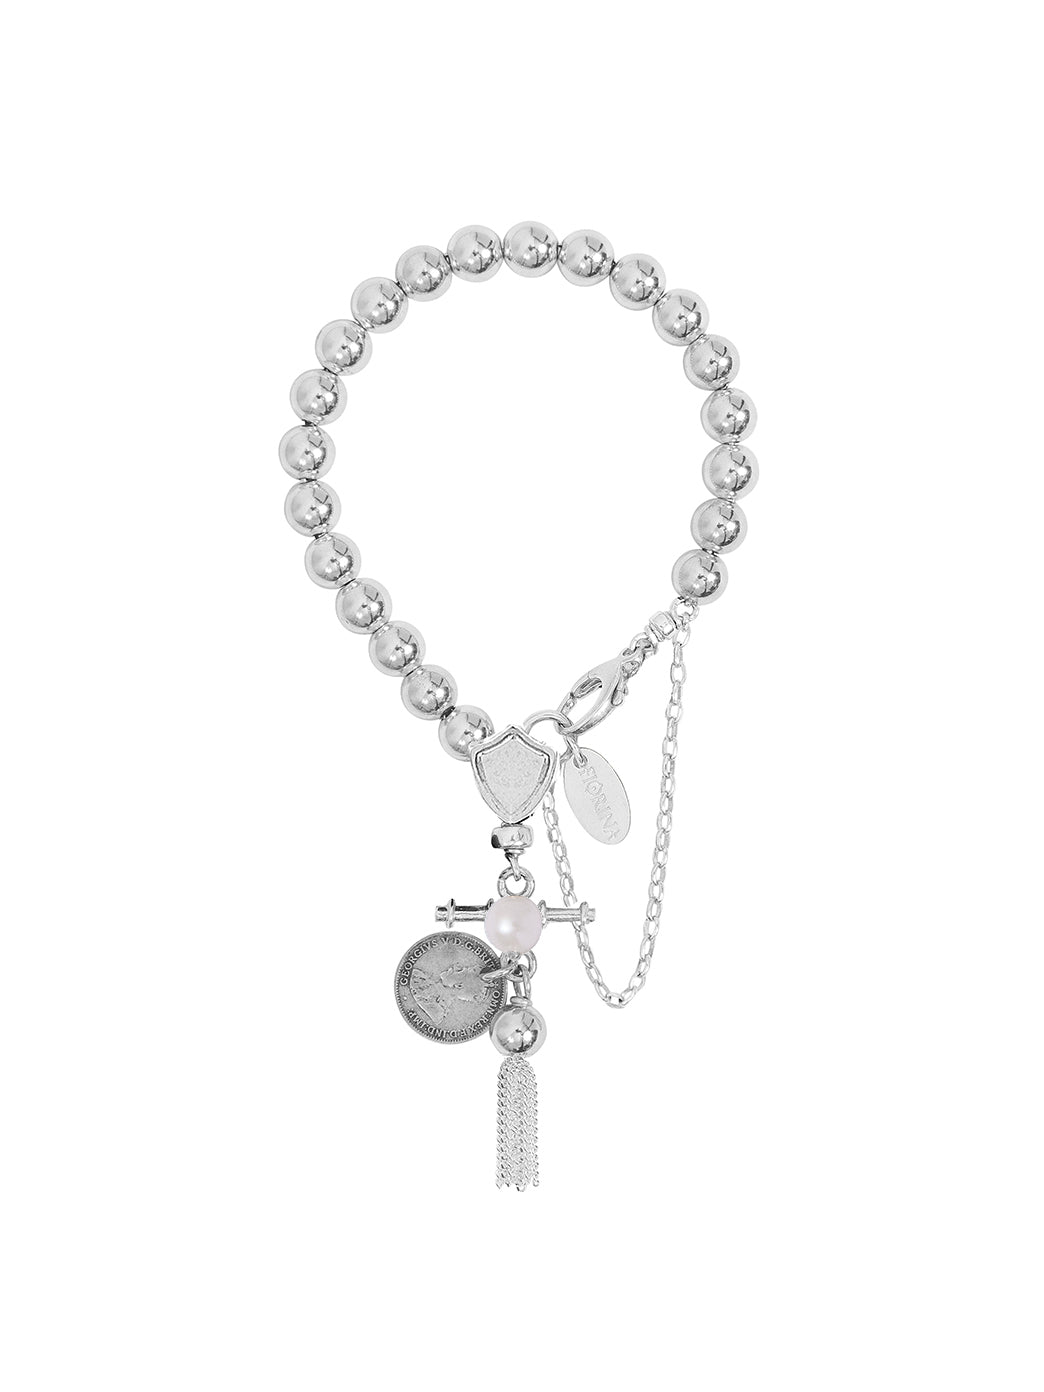 Komboloy Bracelet with Shield and Tassel 8mm Pearl